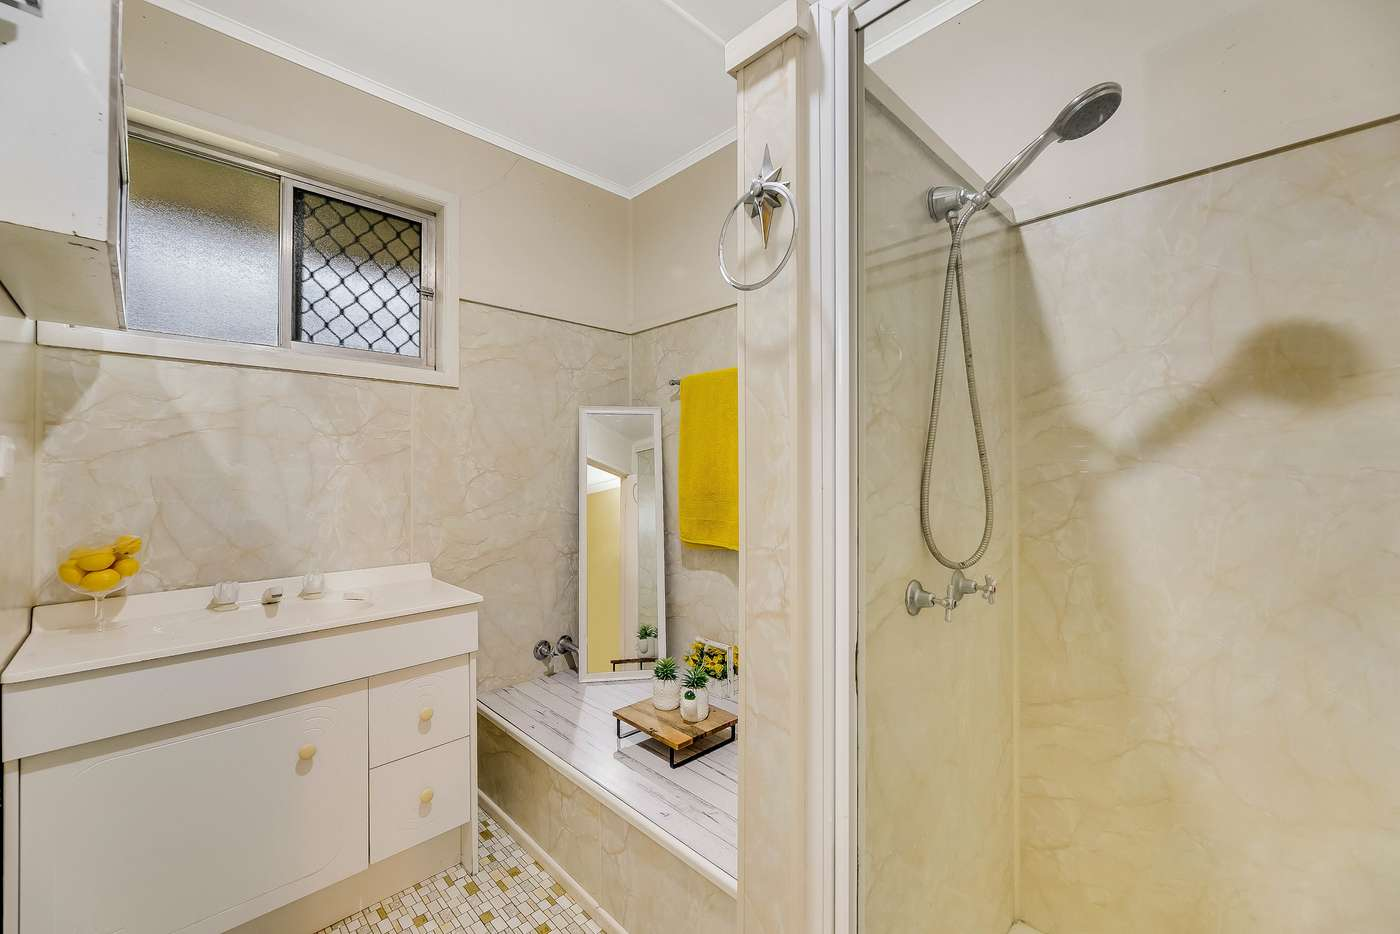 Sixth view of Homely house listing, 42 Hampton Street, Harristown QLD 4350